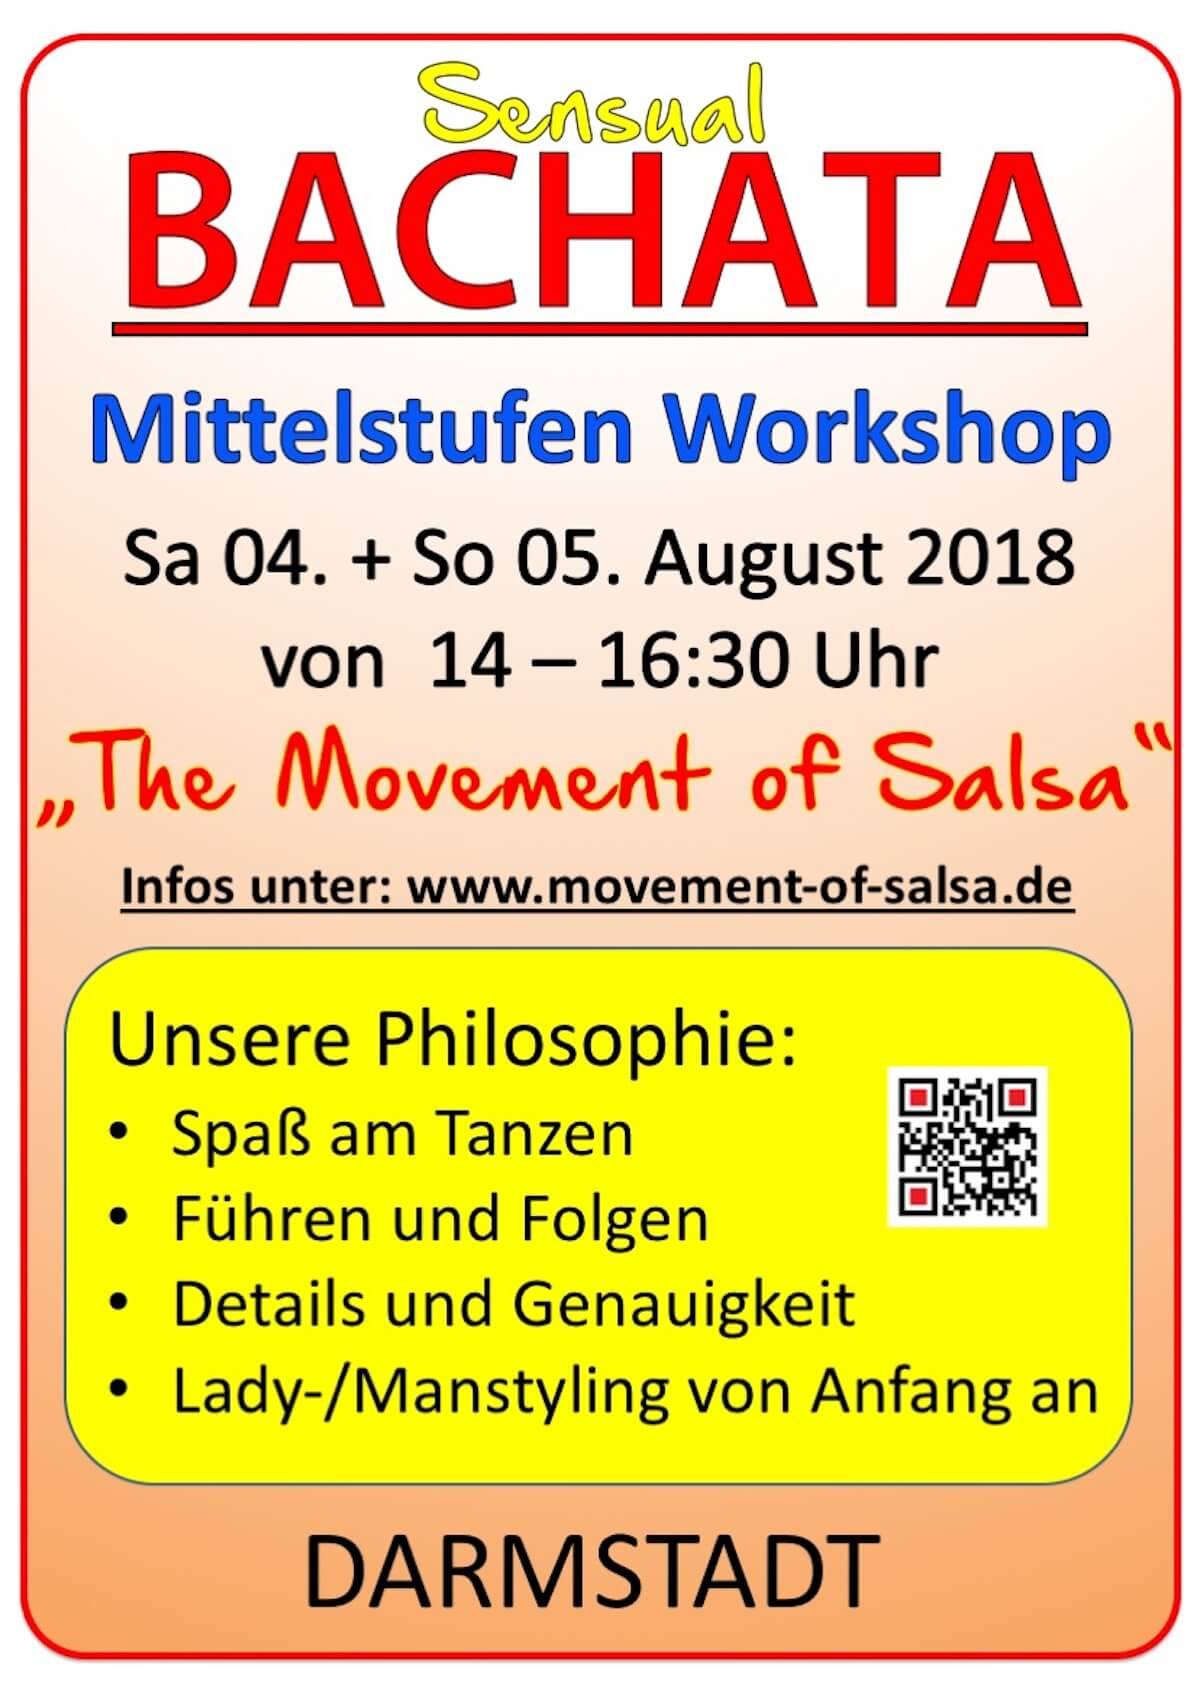 "Bachata Mittelstufen Workshop ""Sensual"" in Darmstadt"